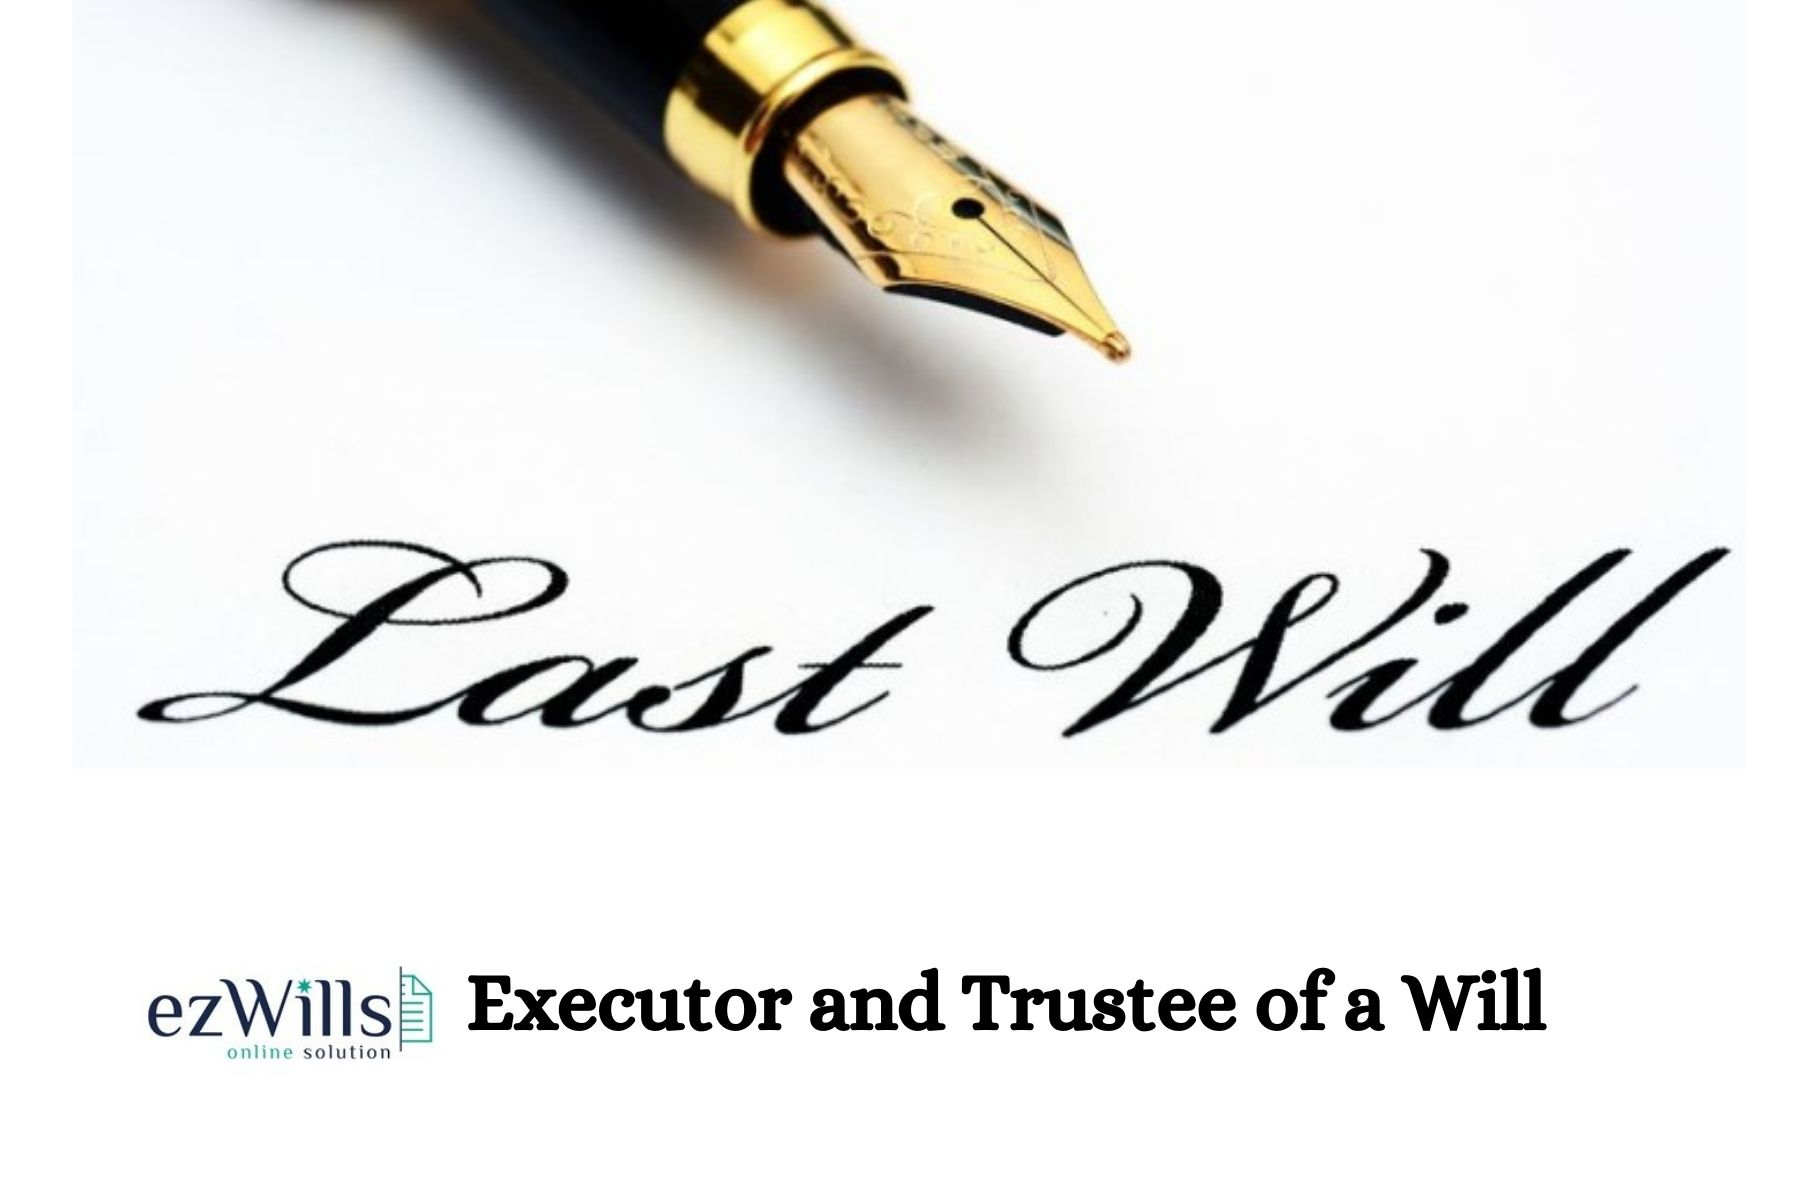 Executor and Trustee of a Will